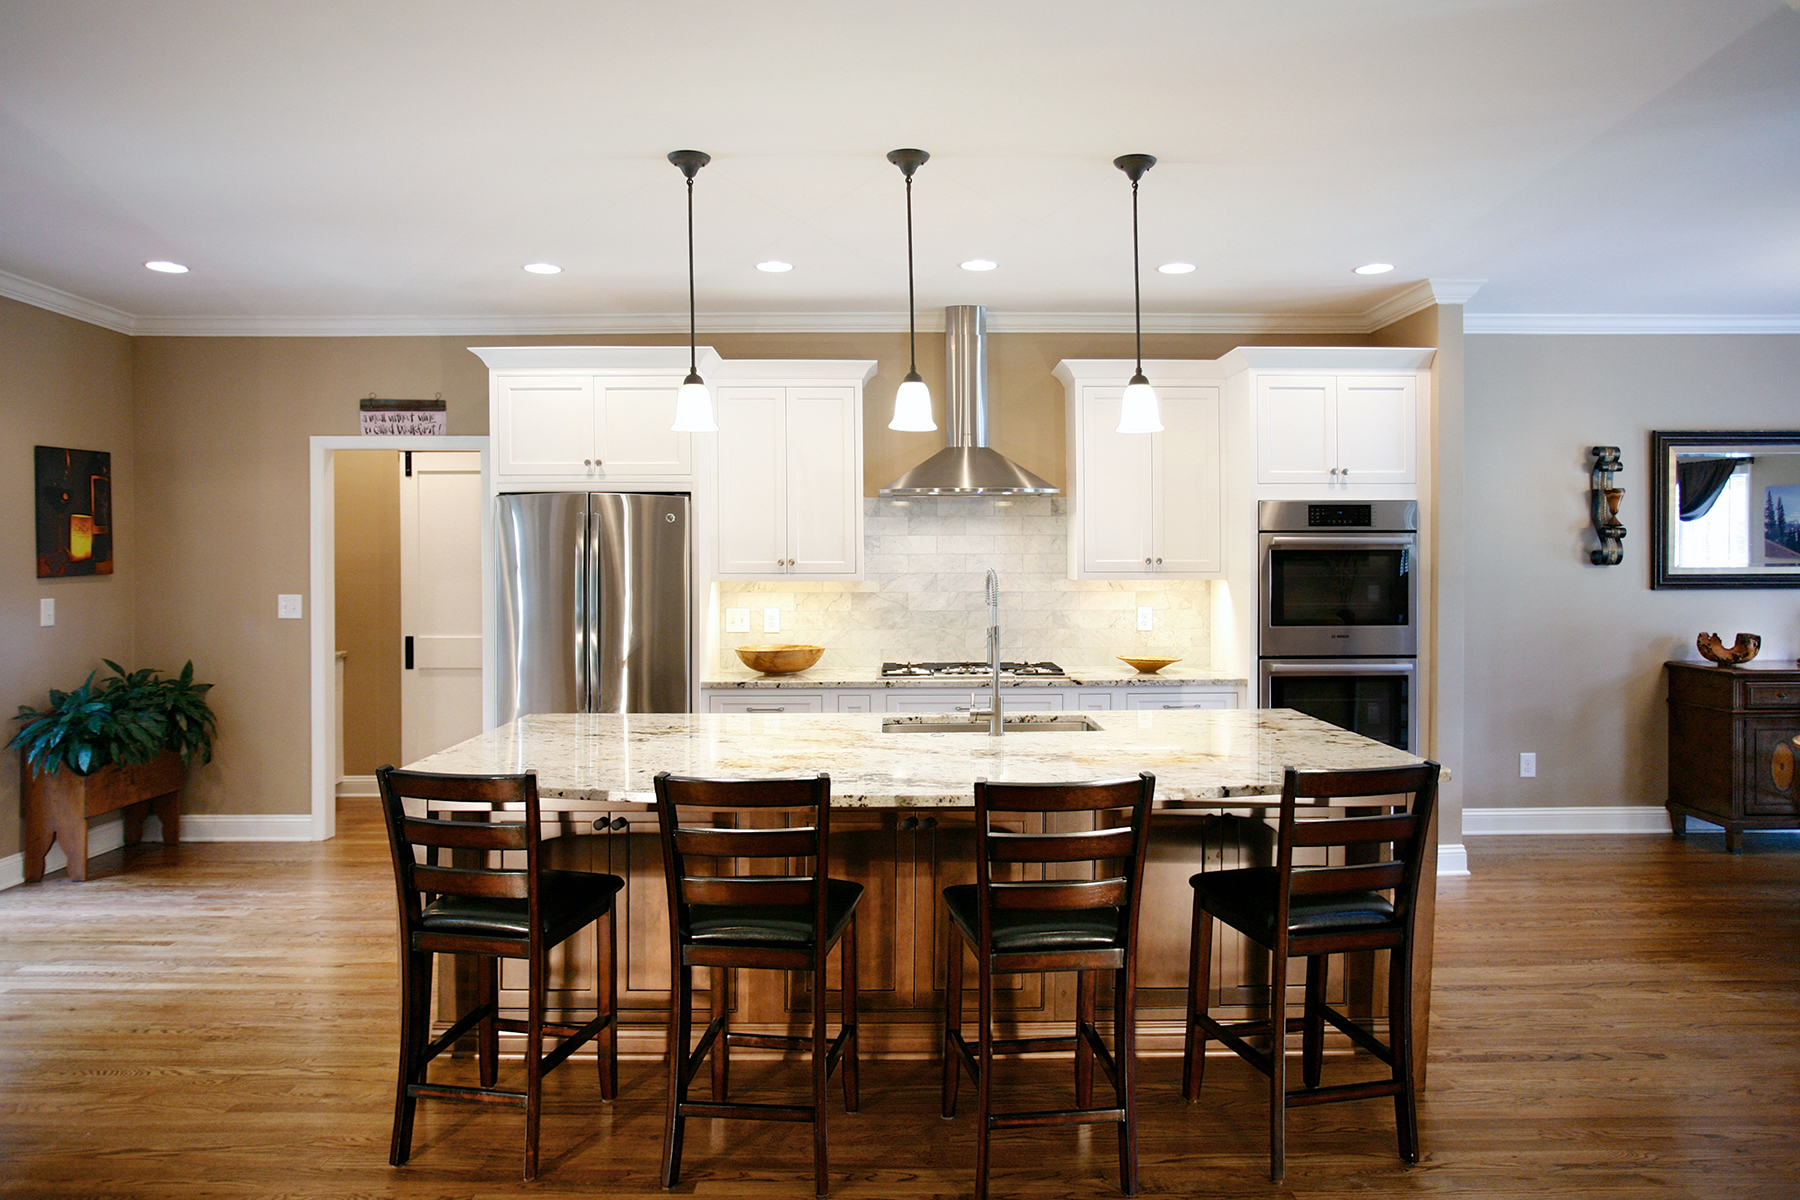 Kitchen Design Group Marietta Ga Kitchen Design Innovations Marietta Ga Wow Blog